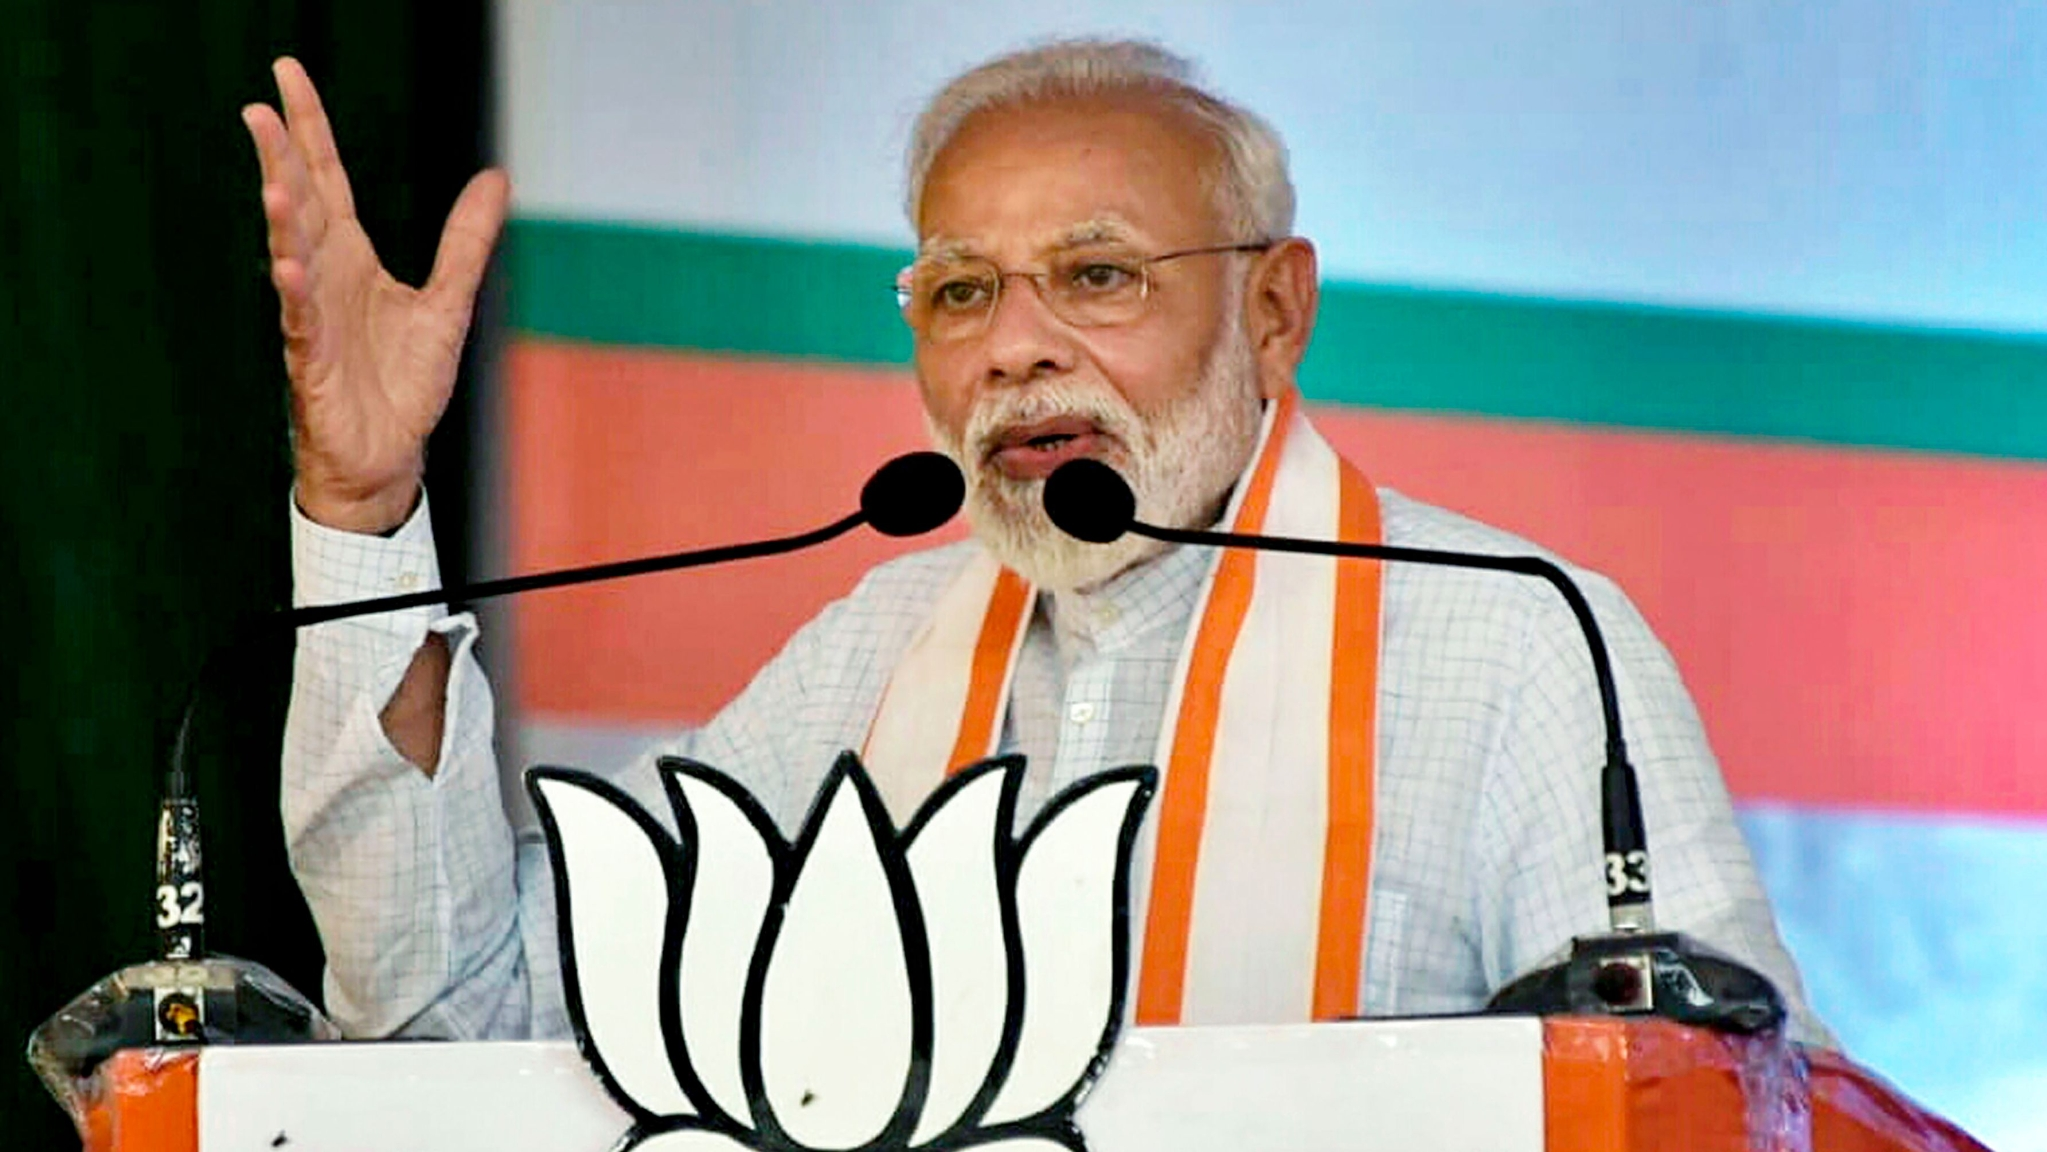 VD Savarkar's 'Sanskar' Basis for Nation-Building: PM Modi